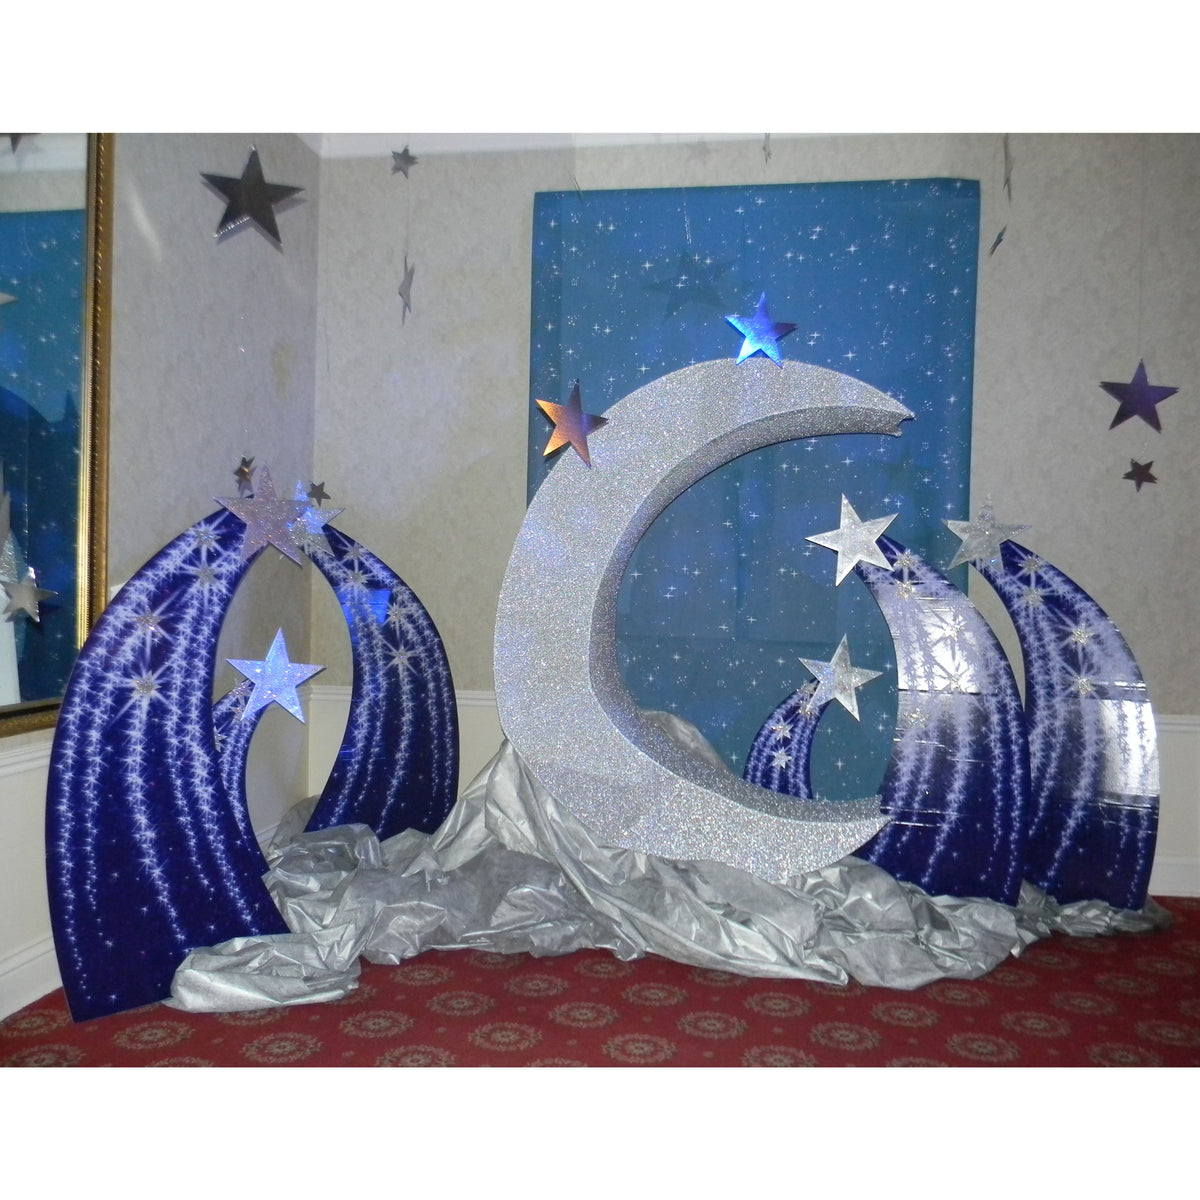 3 ft. 10 in. to 6 ft. 2 in. Shooting Star Standee Set